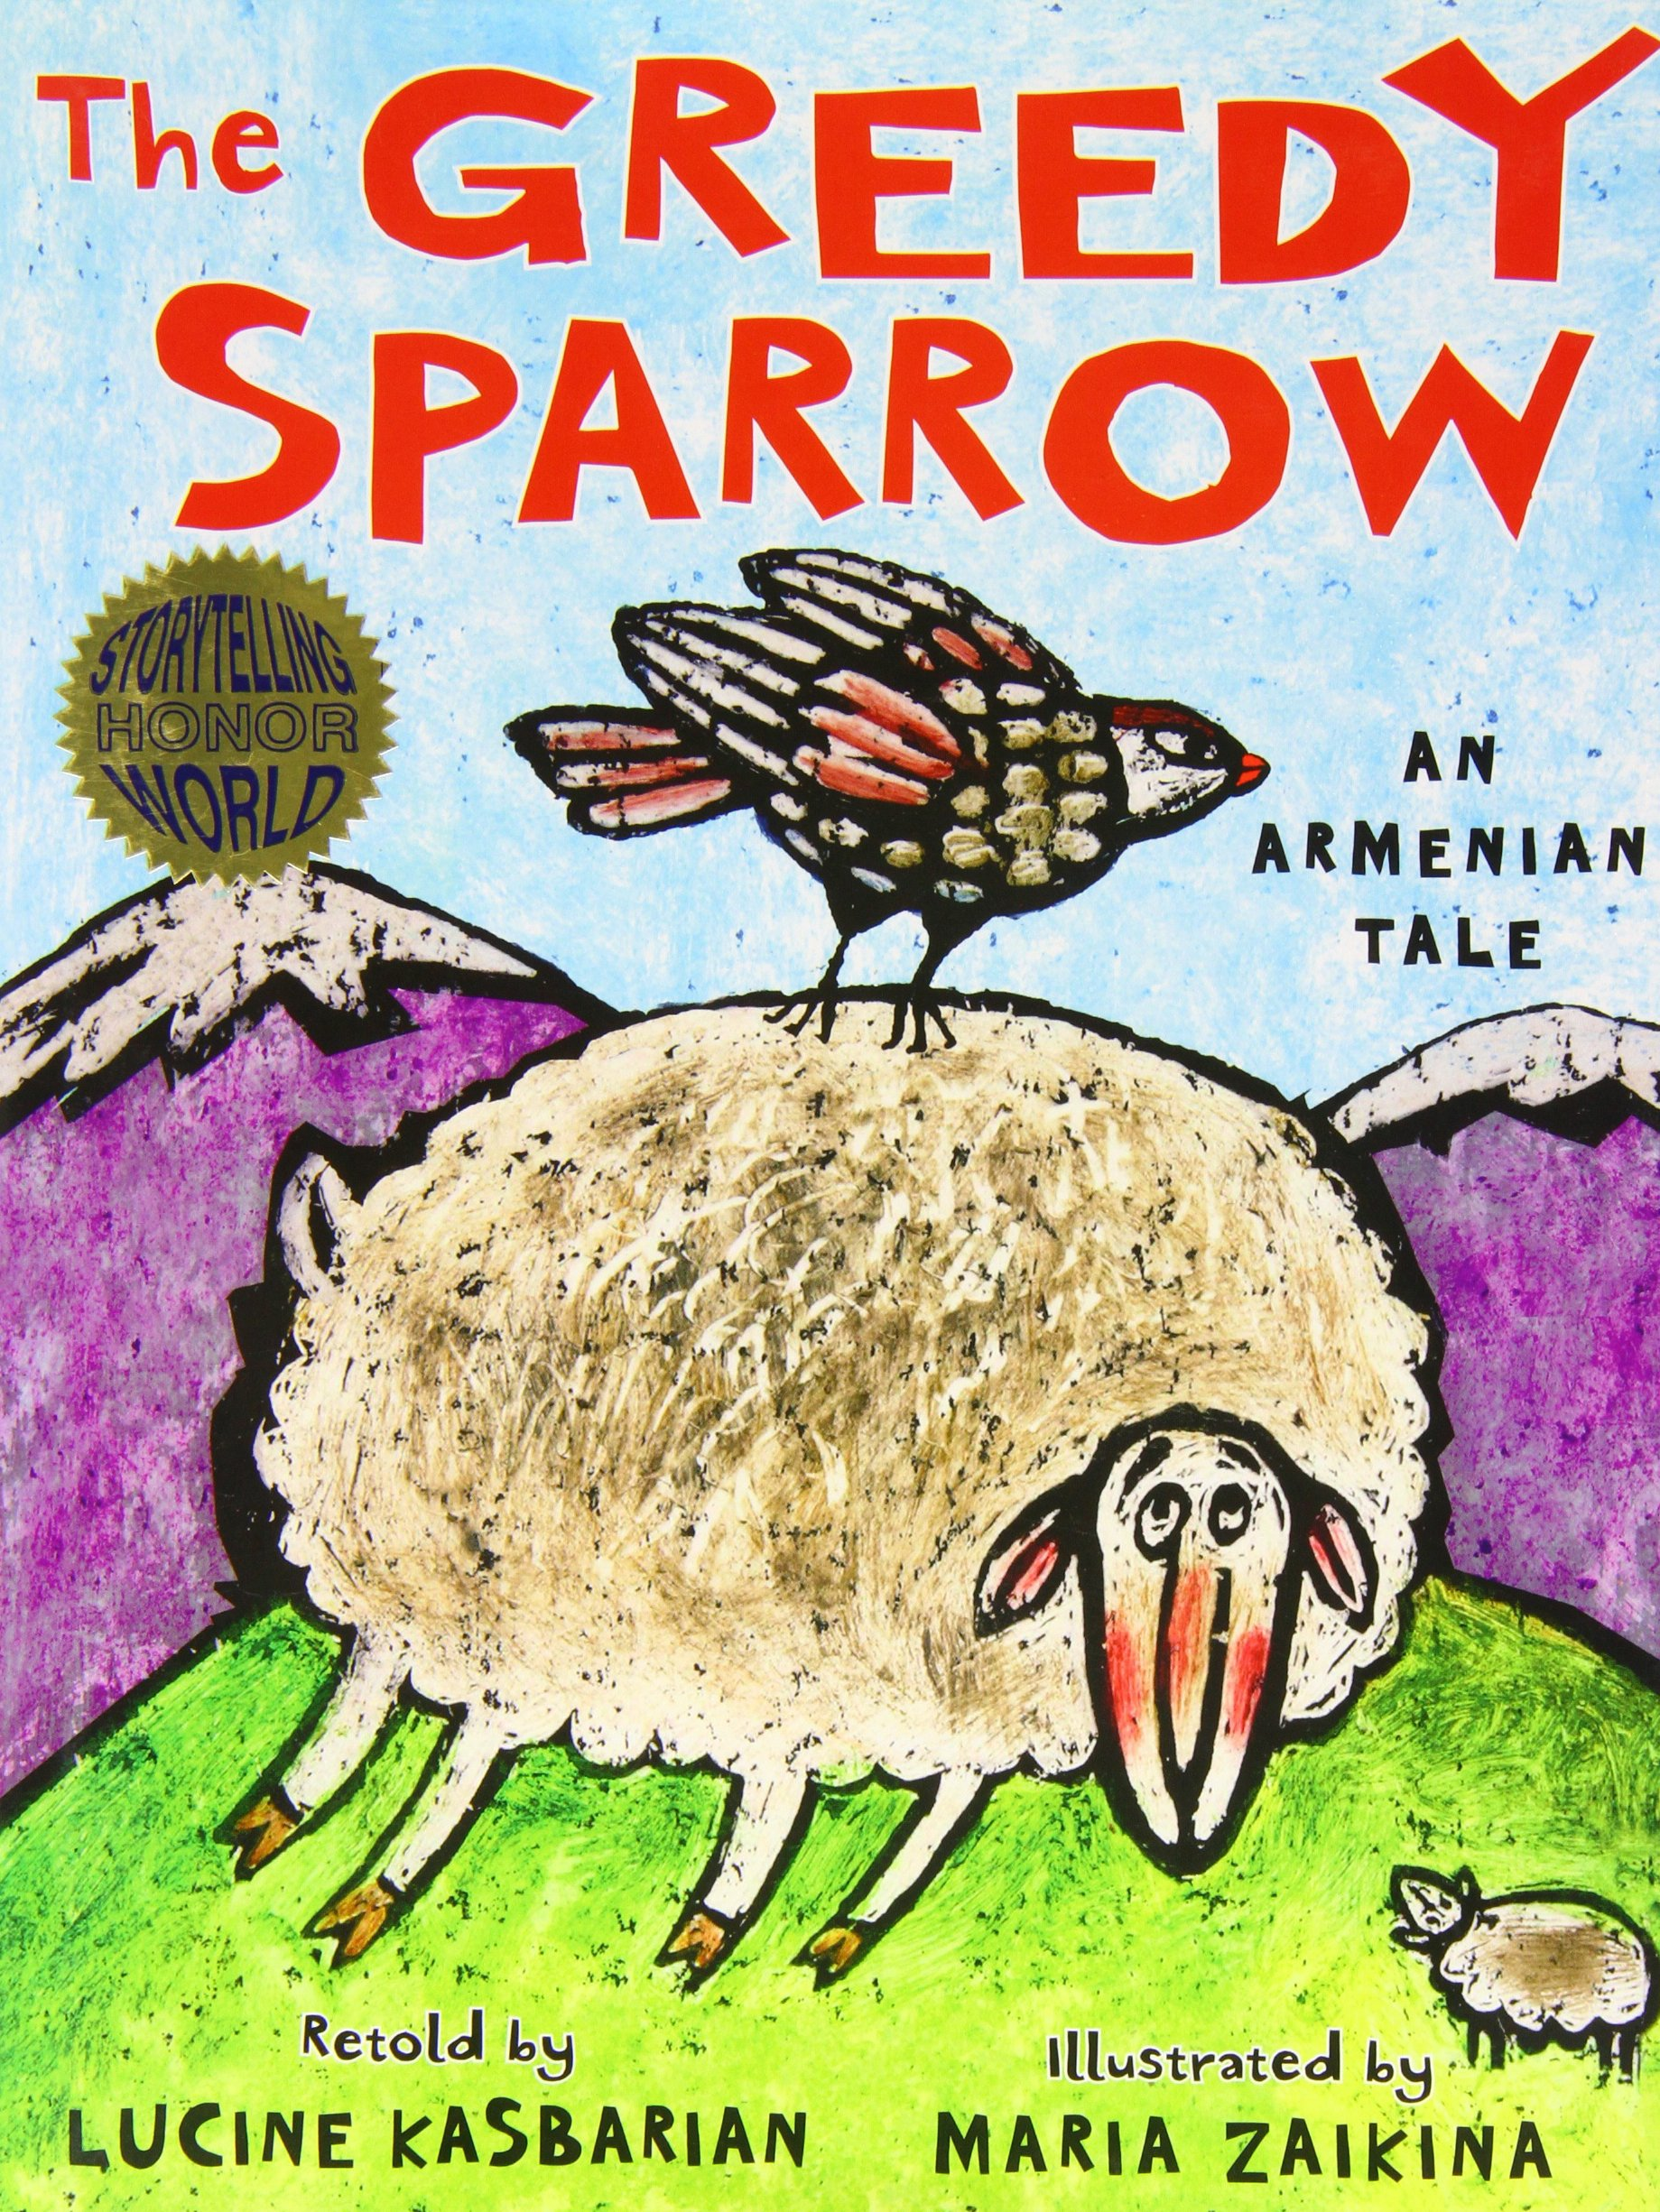 2017-books-armenia-the-greedy-sparrow.jpg